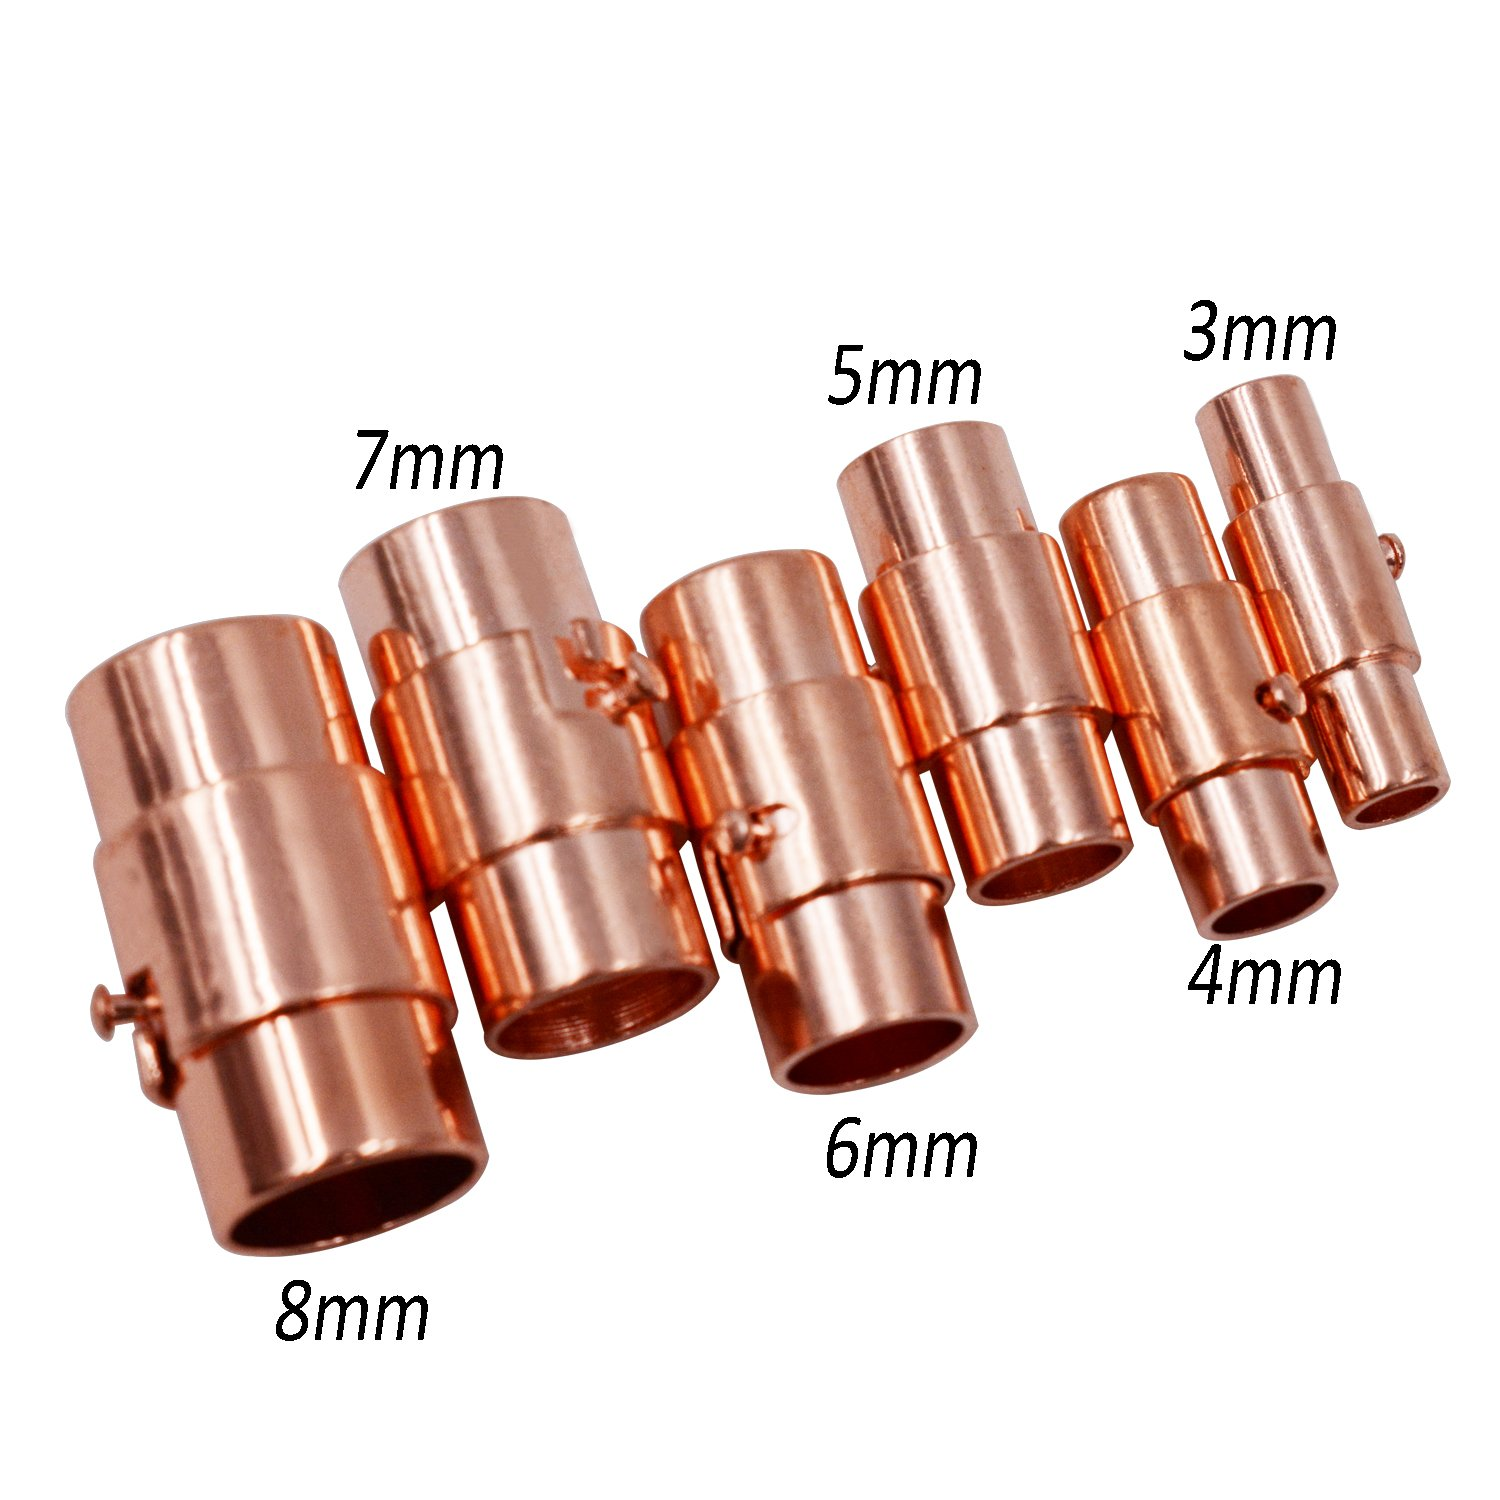 Rose Gold 6mm REVEW 20sets Leather Cord End Cap//Magnetic Clasp with Locking Mechanism Leather Rope Bracelet Buckle